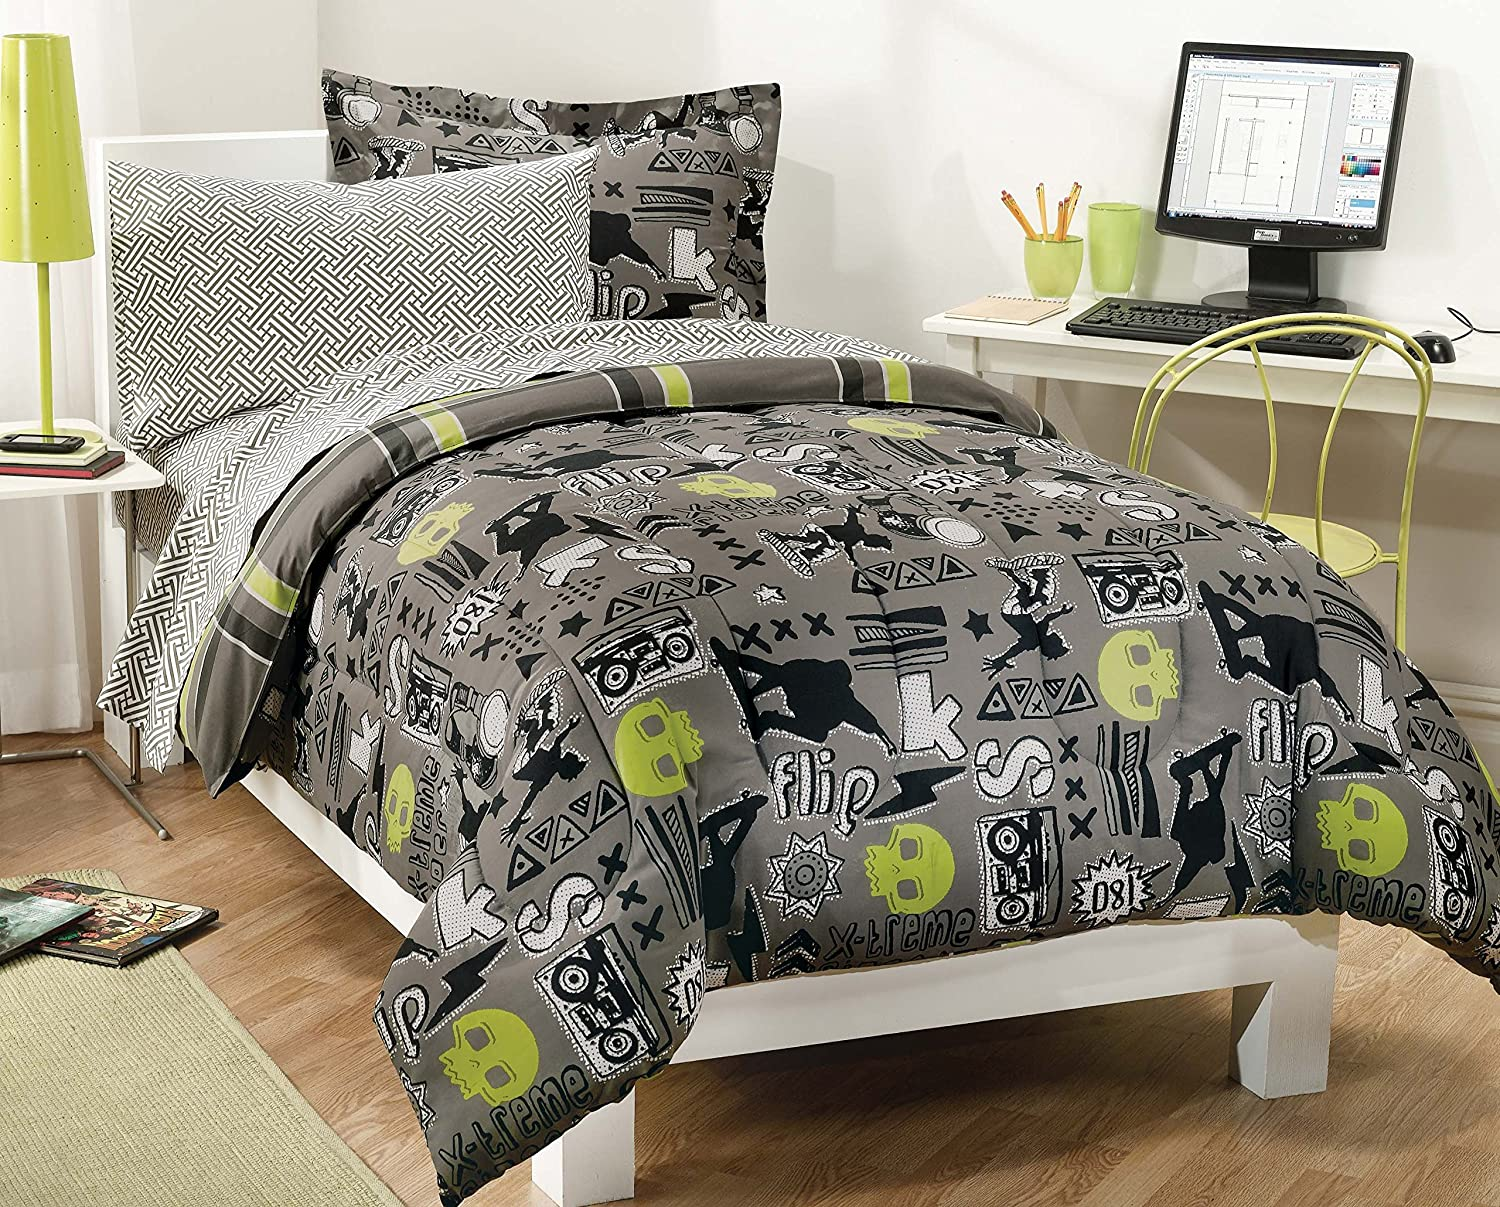 Amazon.com: My Room Extreme Skateboarding Boys Comforter Set With 180Tc  Sheets, Gray, Full: Home U0026 Kitchen